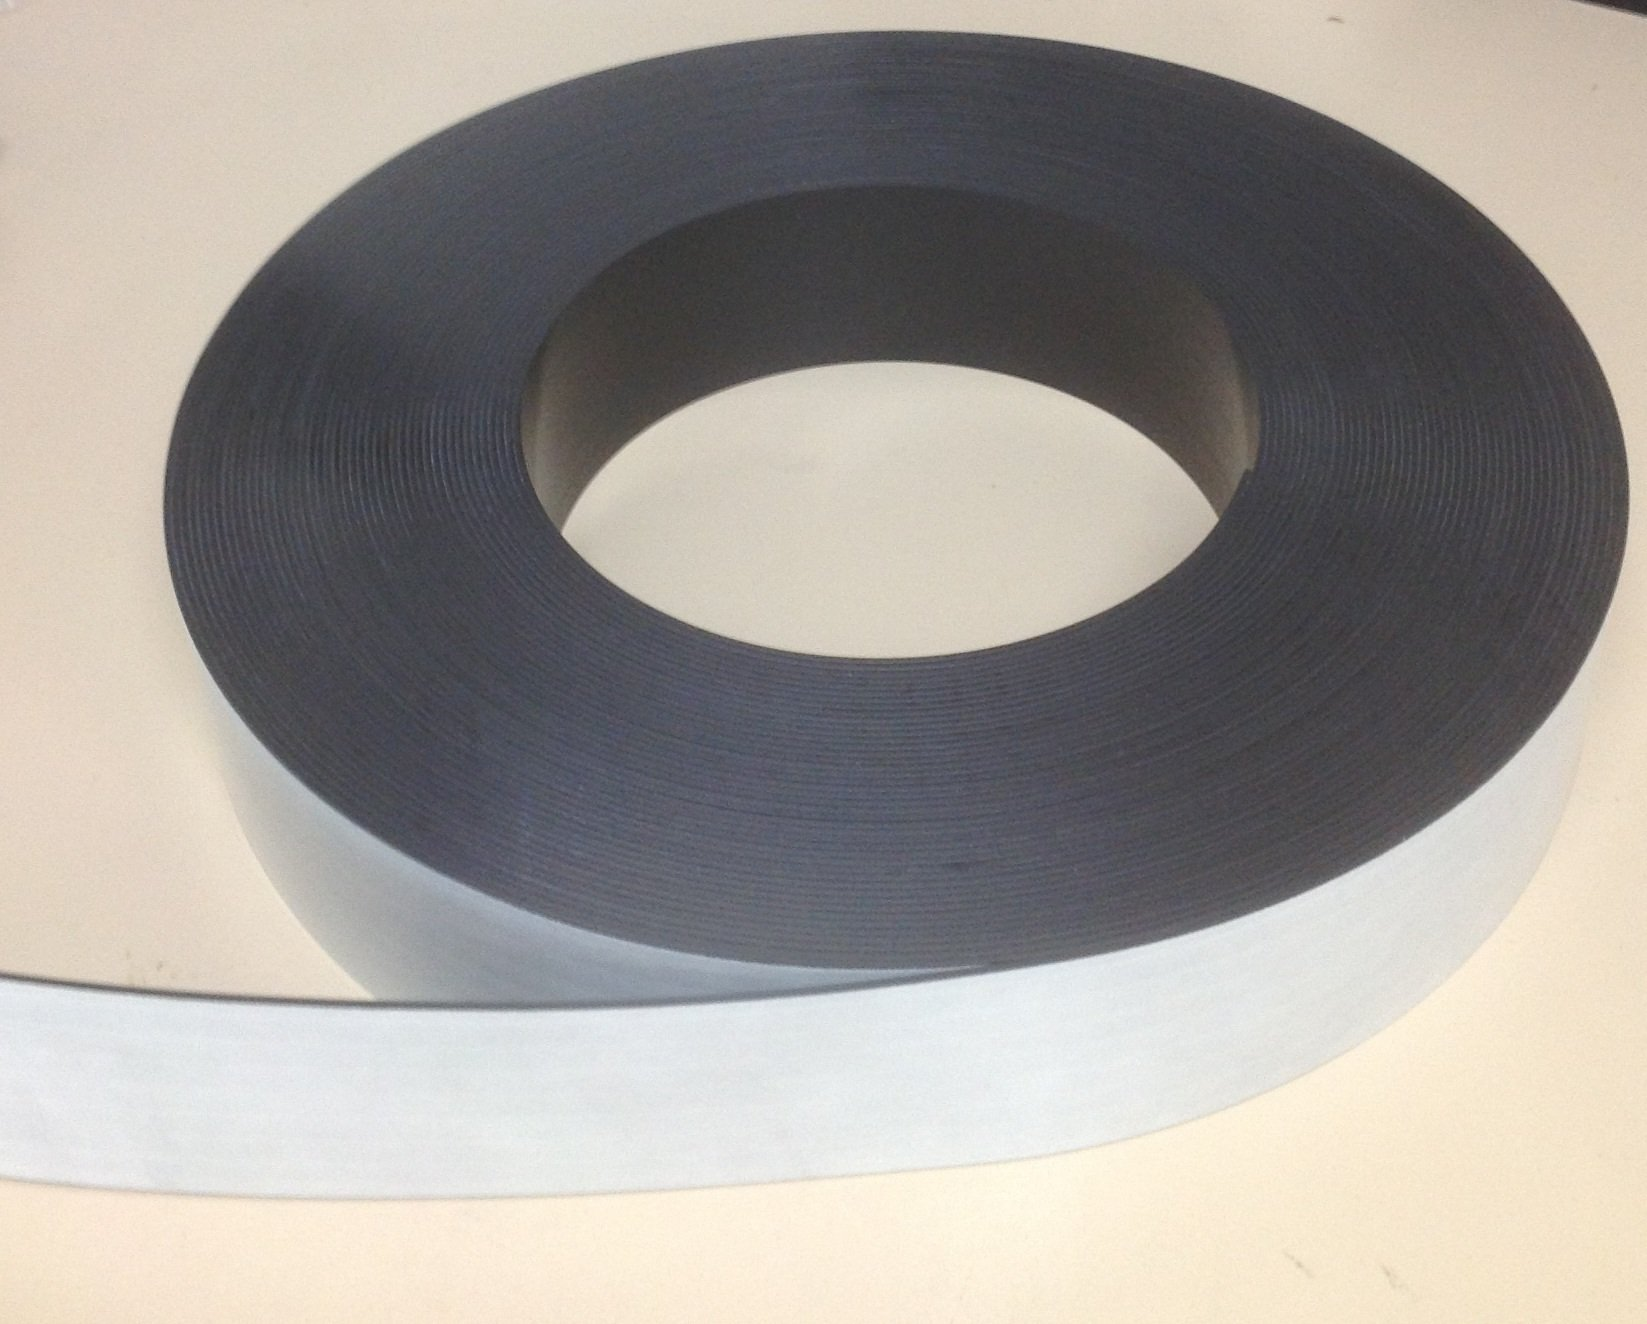 Magnet Valley 2'' x 100' Adhesive Indoor Magnetic Strip Roll 60 mil Magnets by Magnet Valley